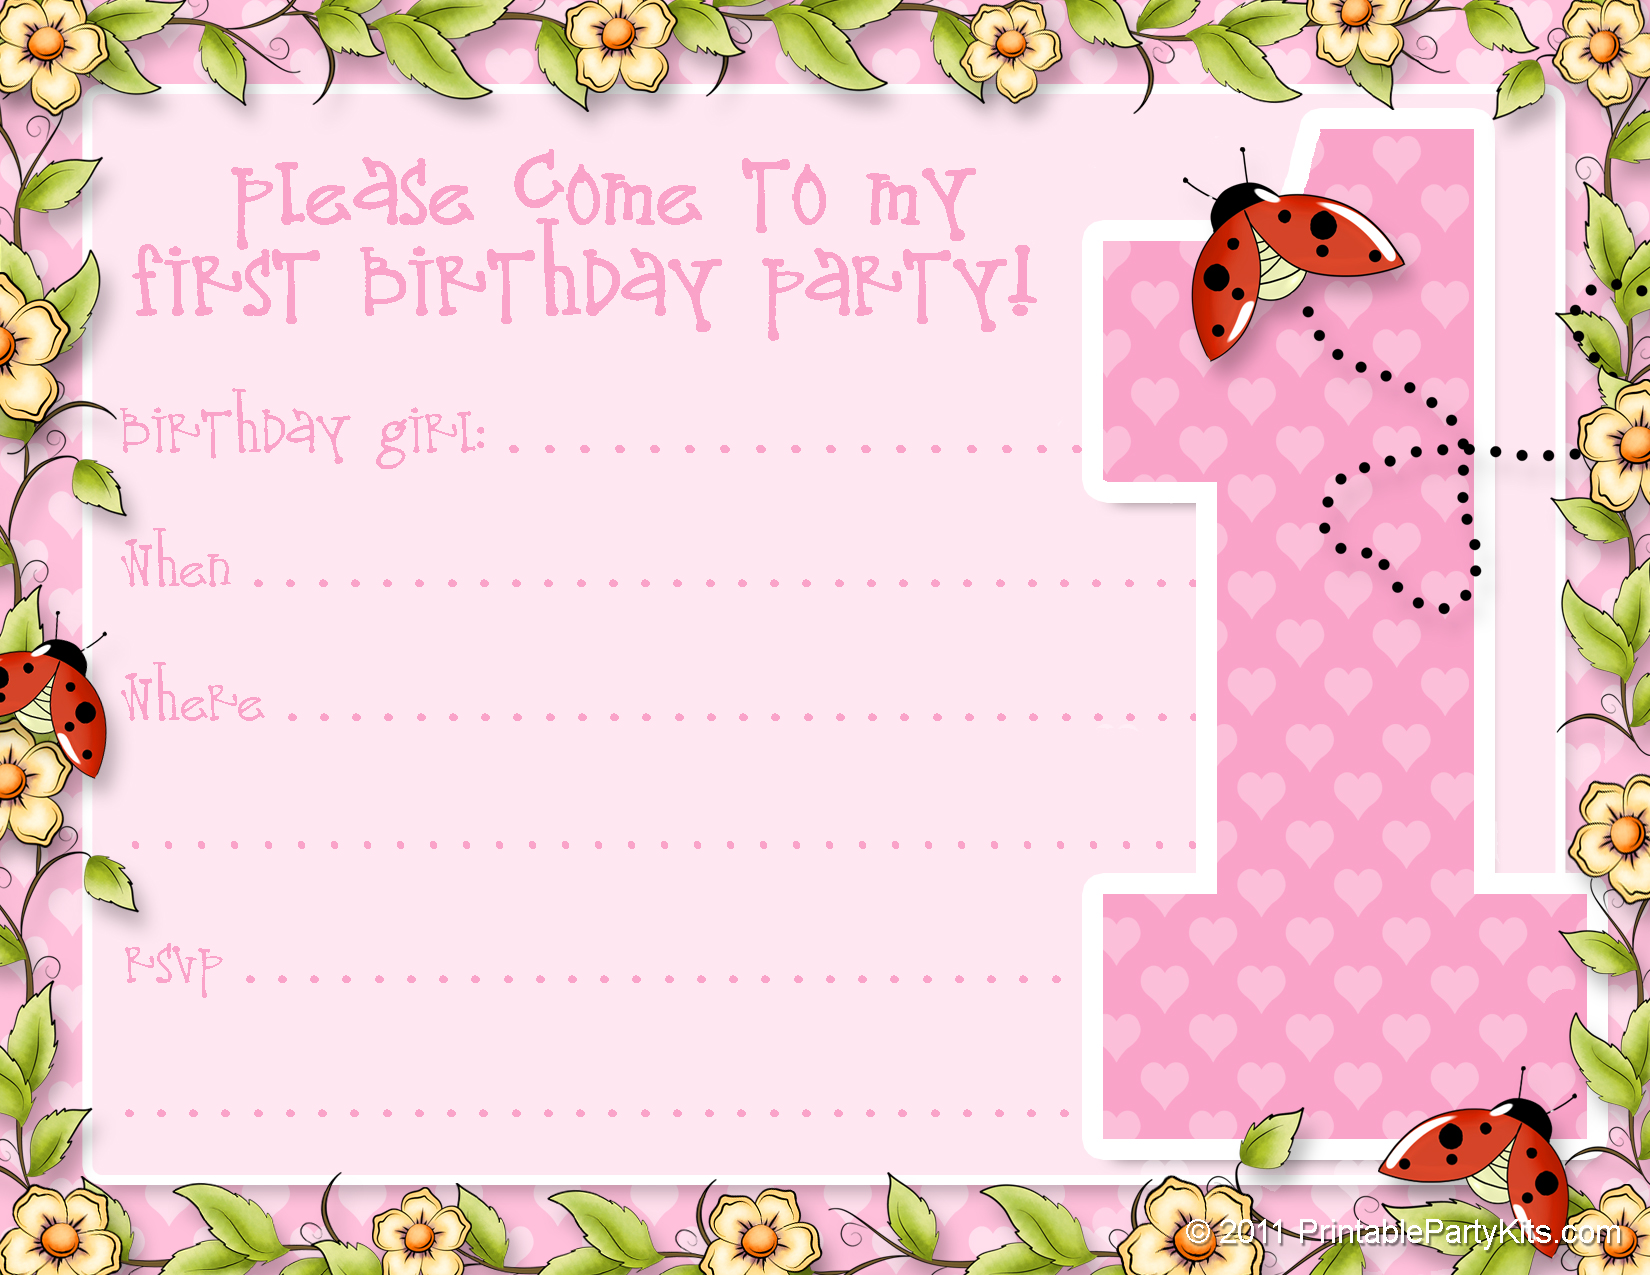 You might also like these other free birthday printables for kids: